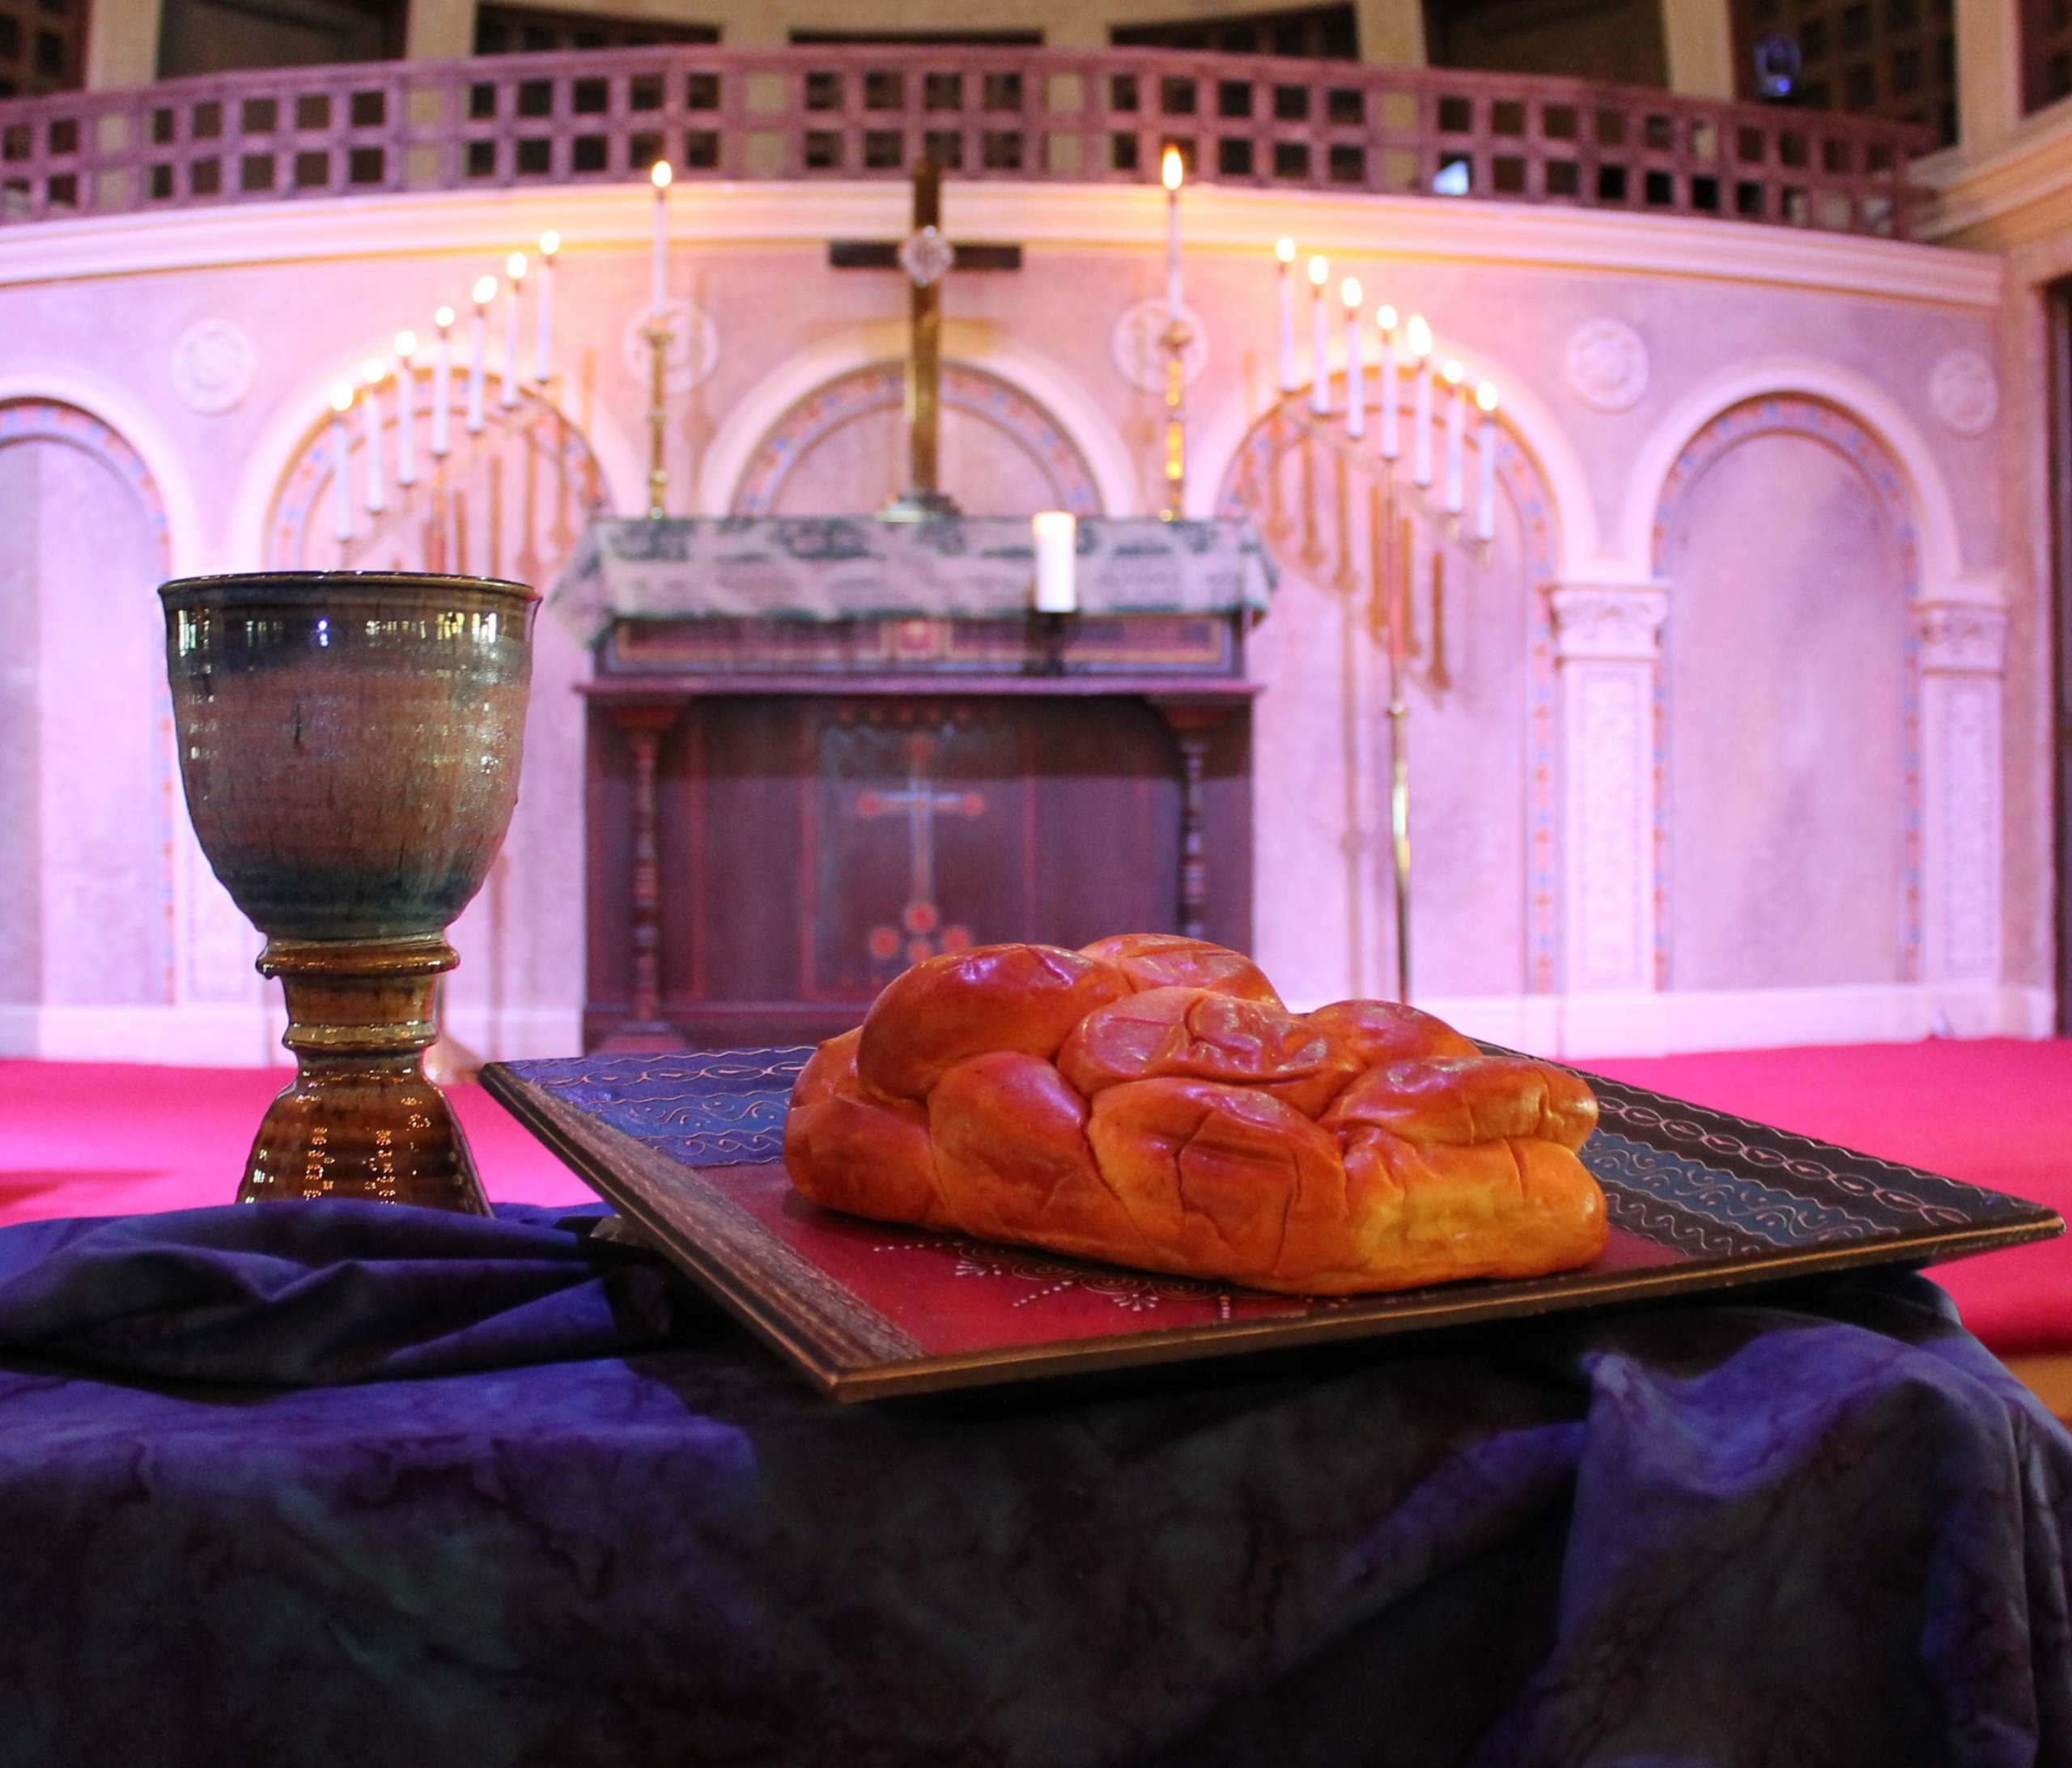 Chalice and loaf of bread in front of altar